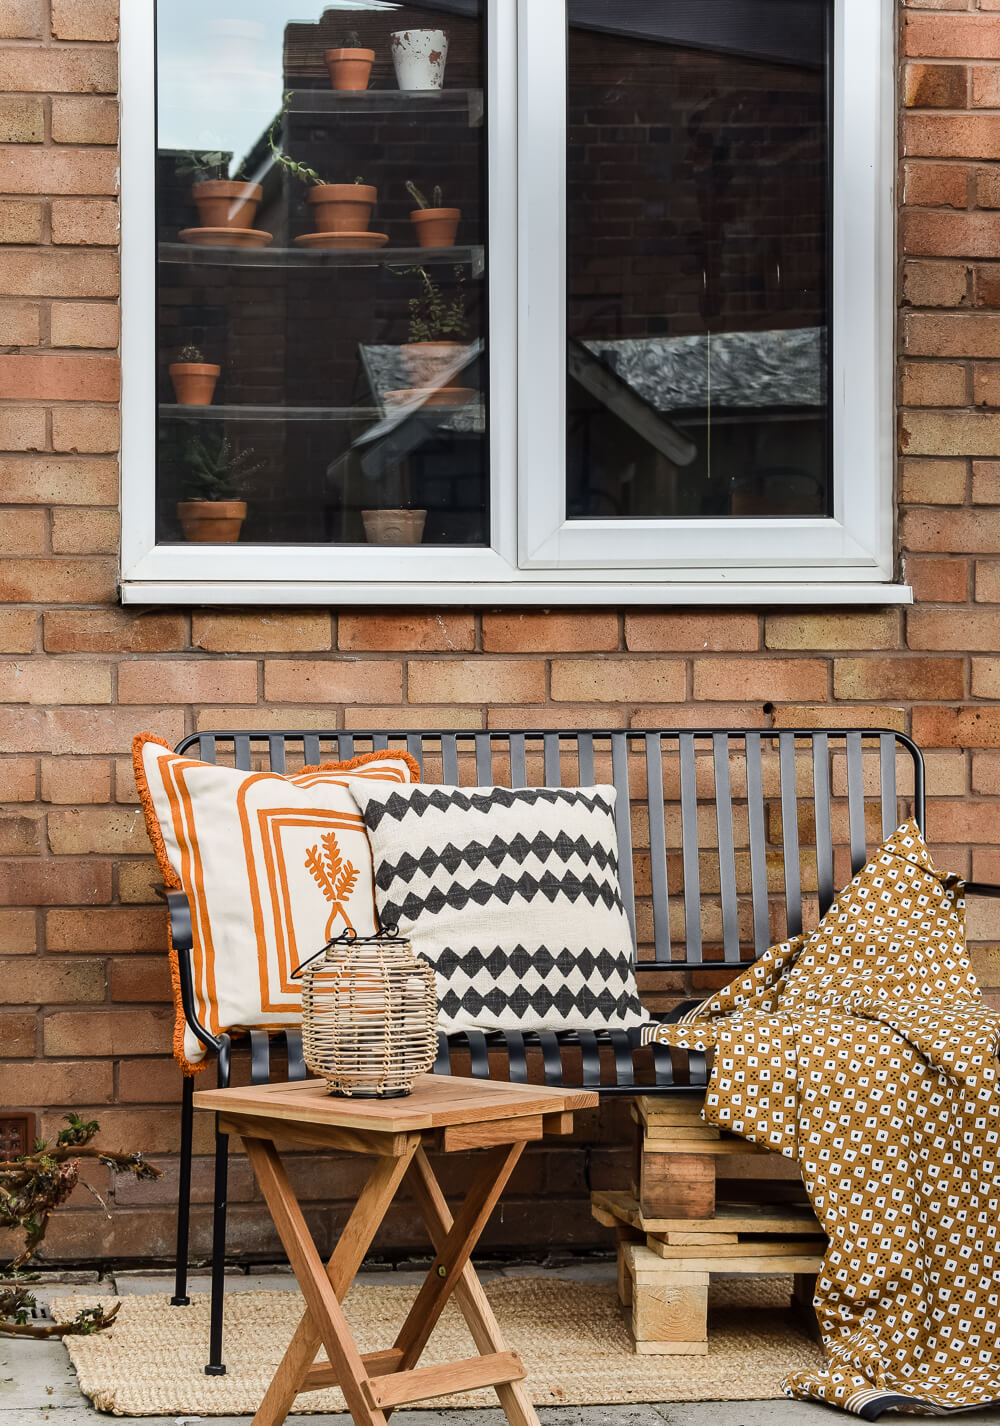 Image of garden furniture from habitat UK. Garden bench, table and cushion